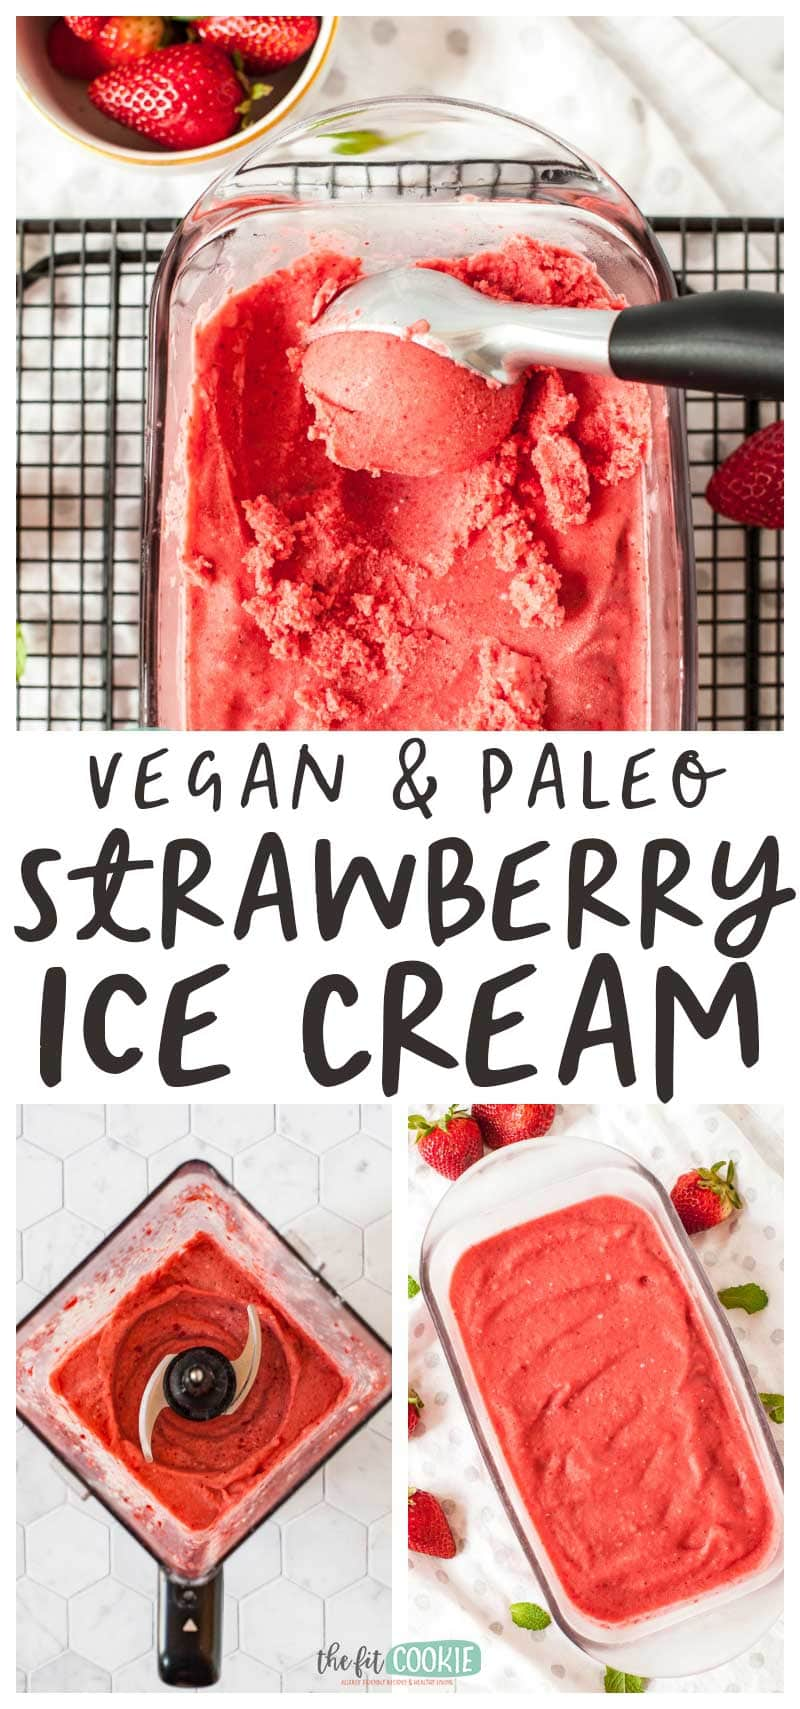 photo collage of vegan strawberry ice cream